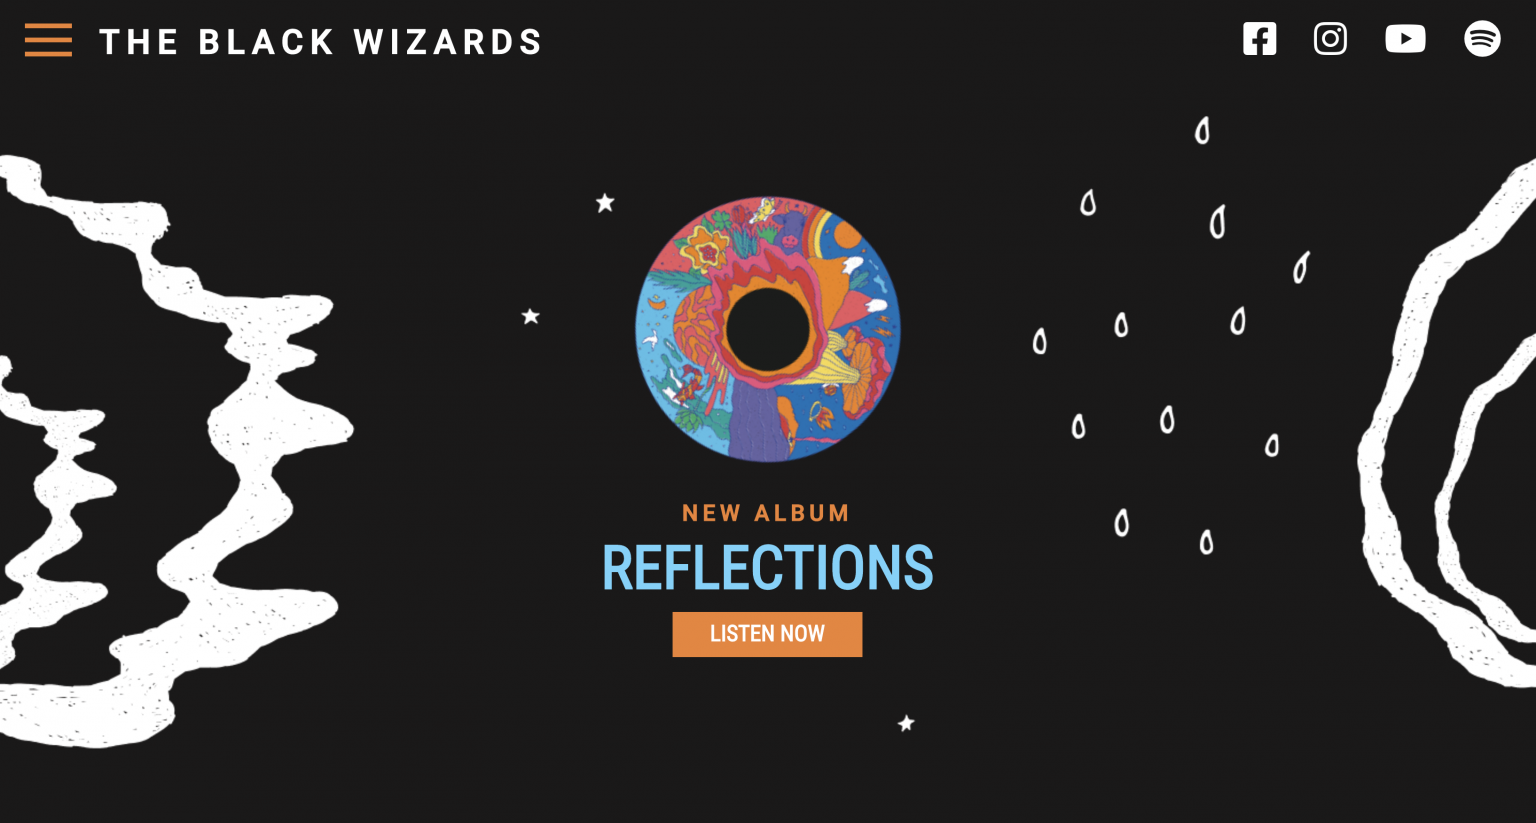 The Black Wizards Official Website developed by Ângela Torres